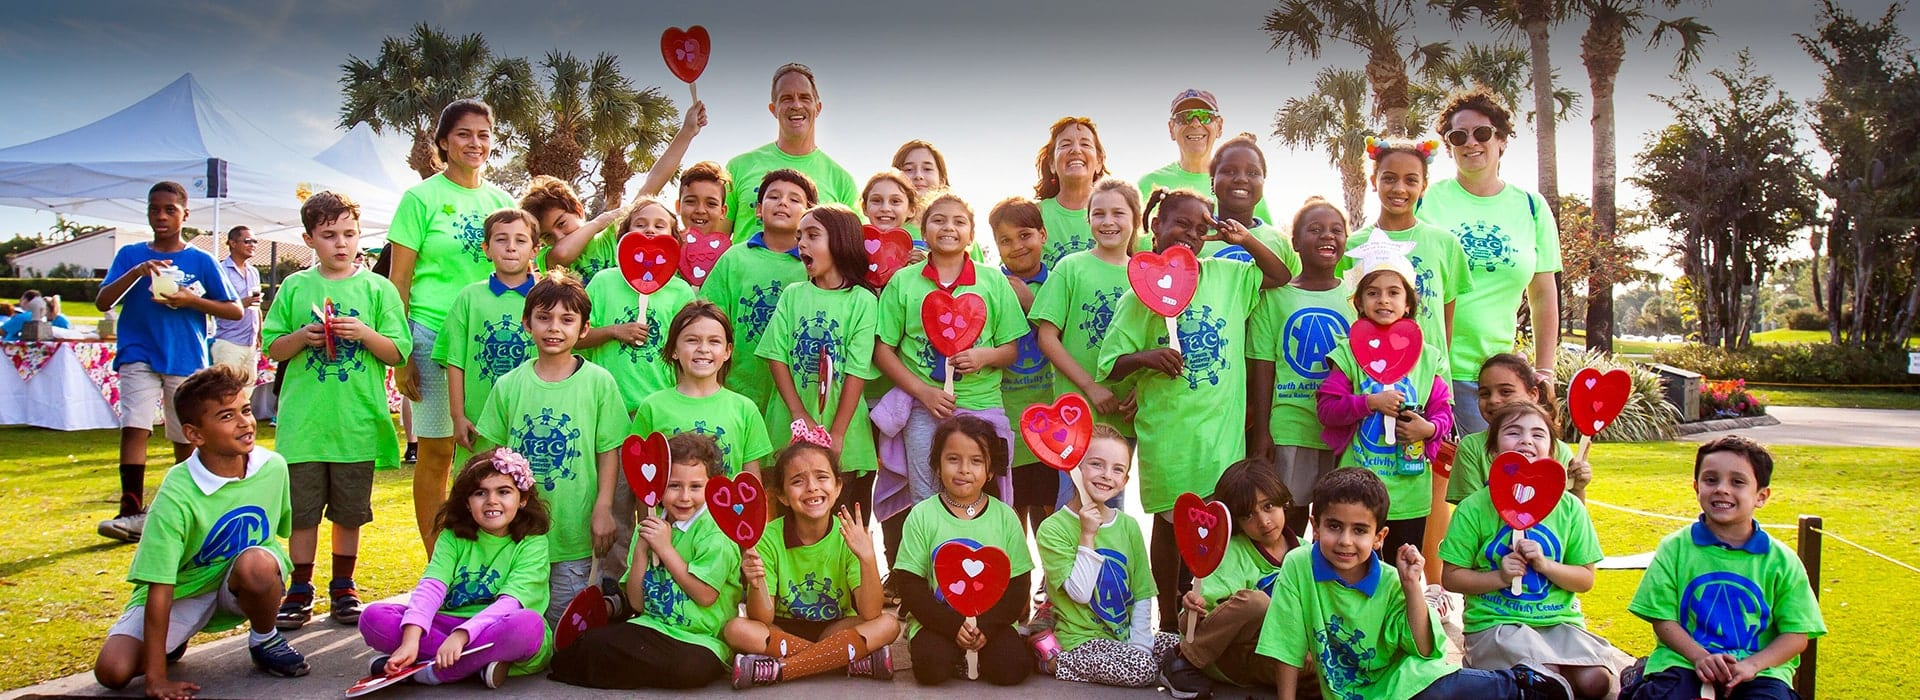 Group photo of children in the Boca Raton community that the Boca West Foundation helps